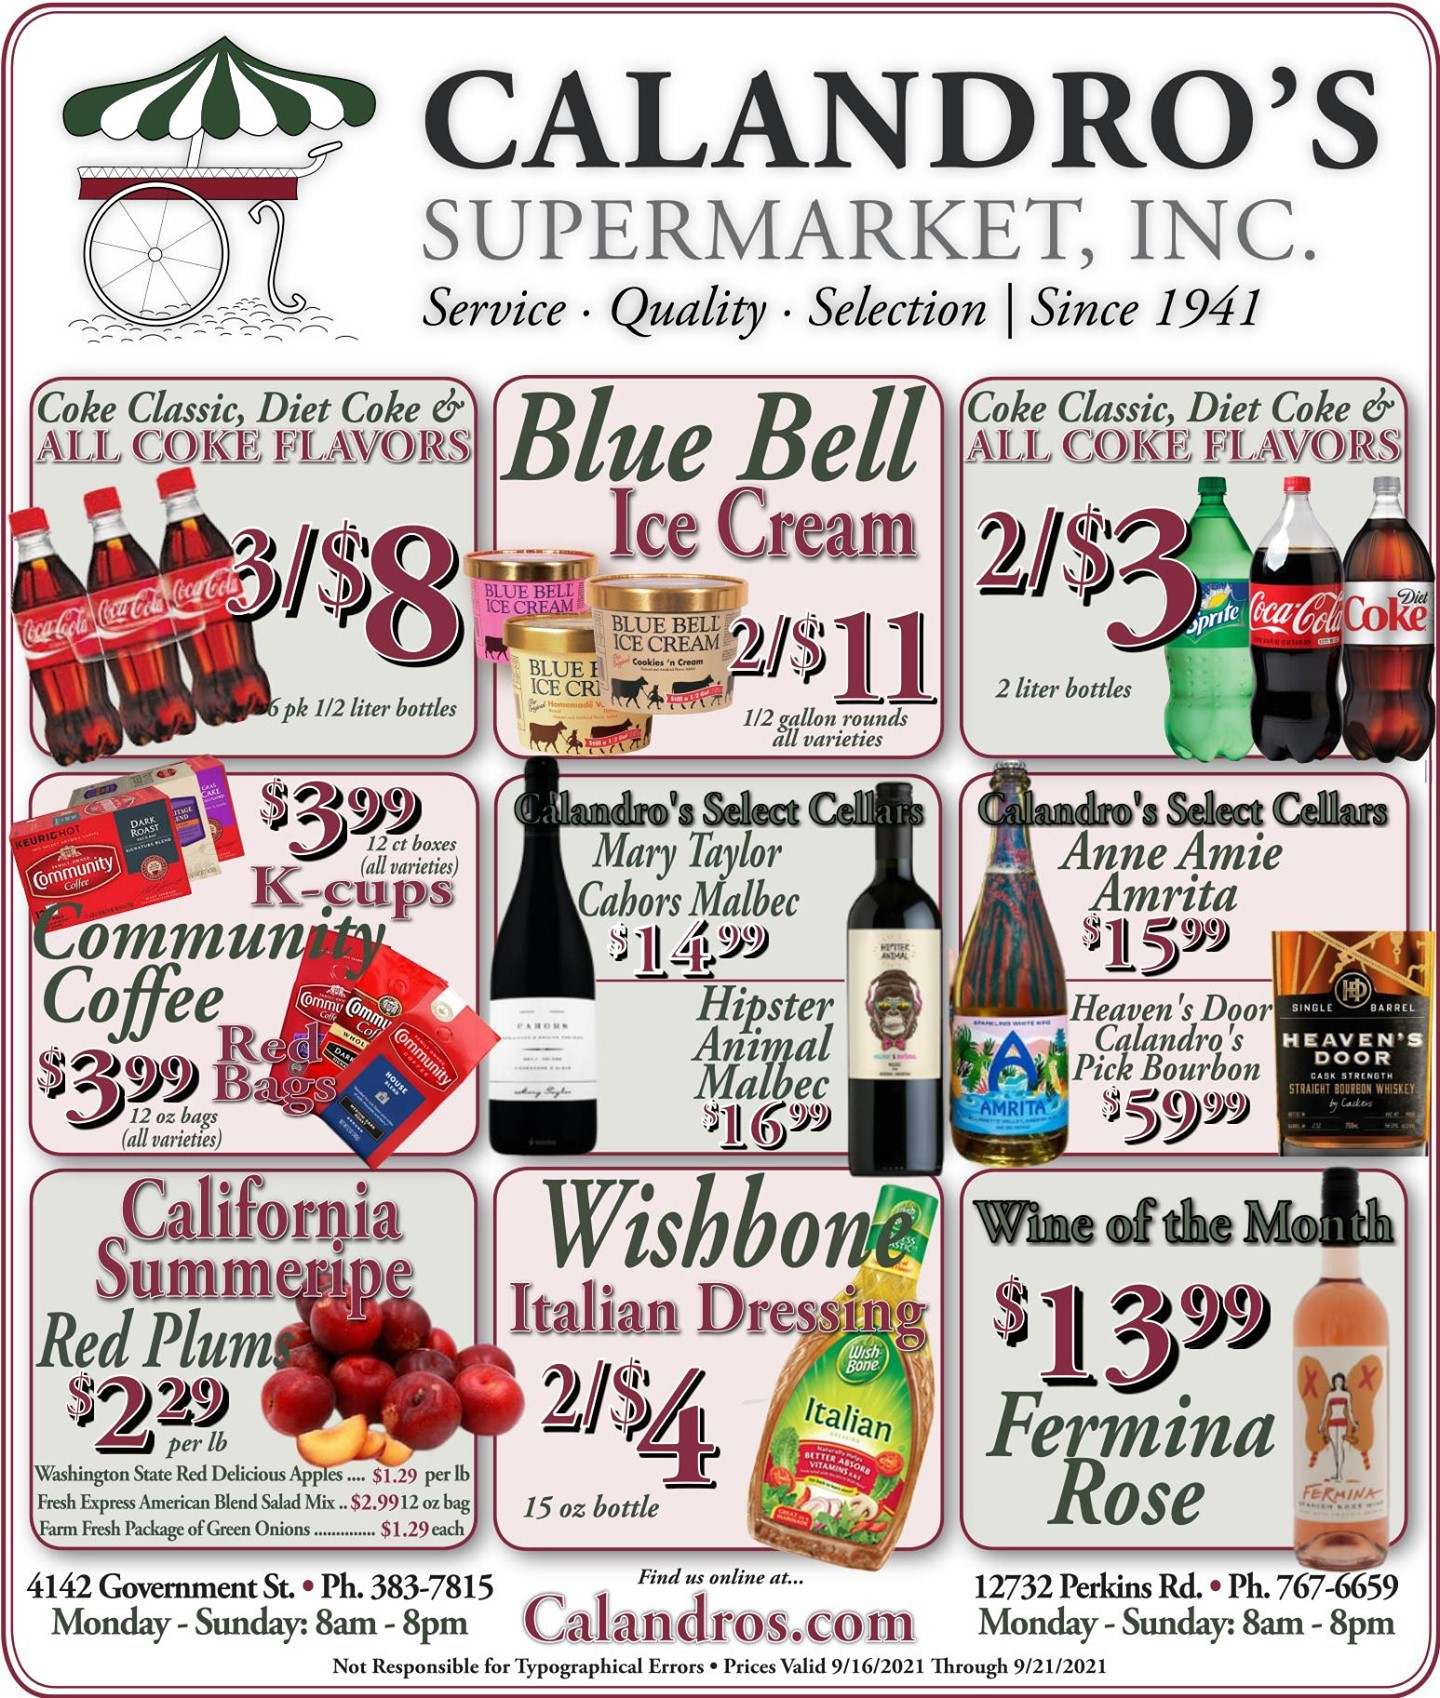 Calandro's Sensational Deals and Sales for This Week! (9/16/2021 – 9/21/2021) http://dlvr.it/S7fwhl…